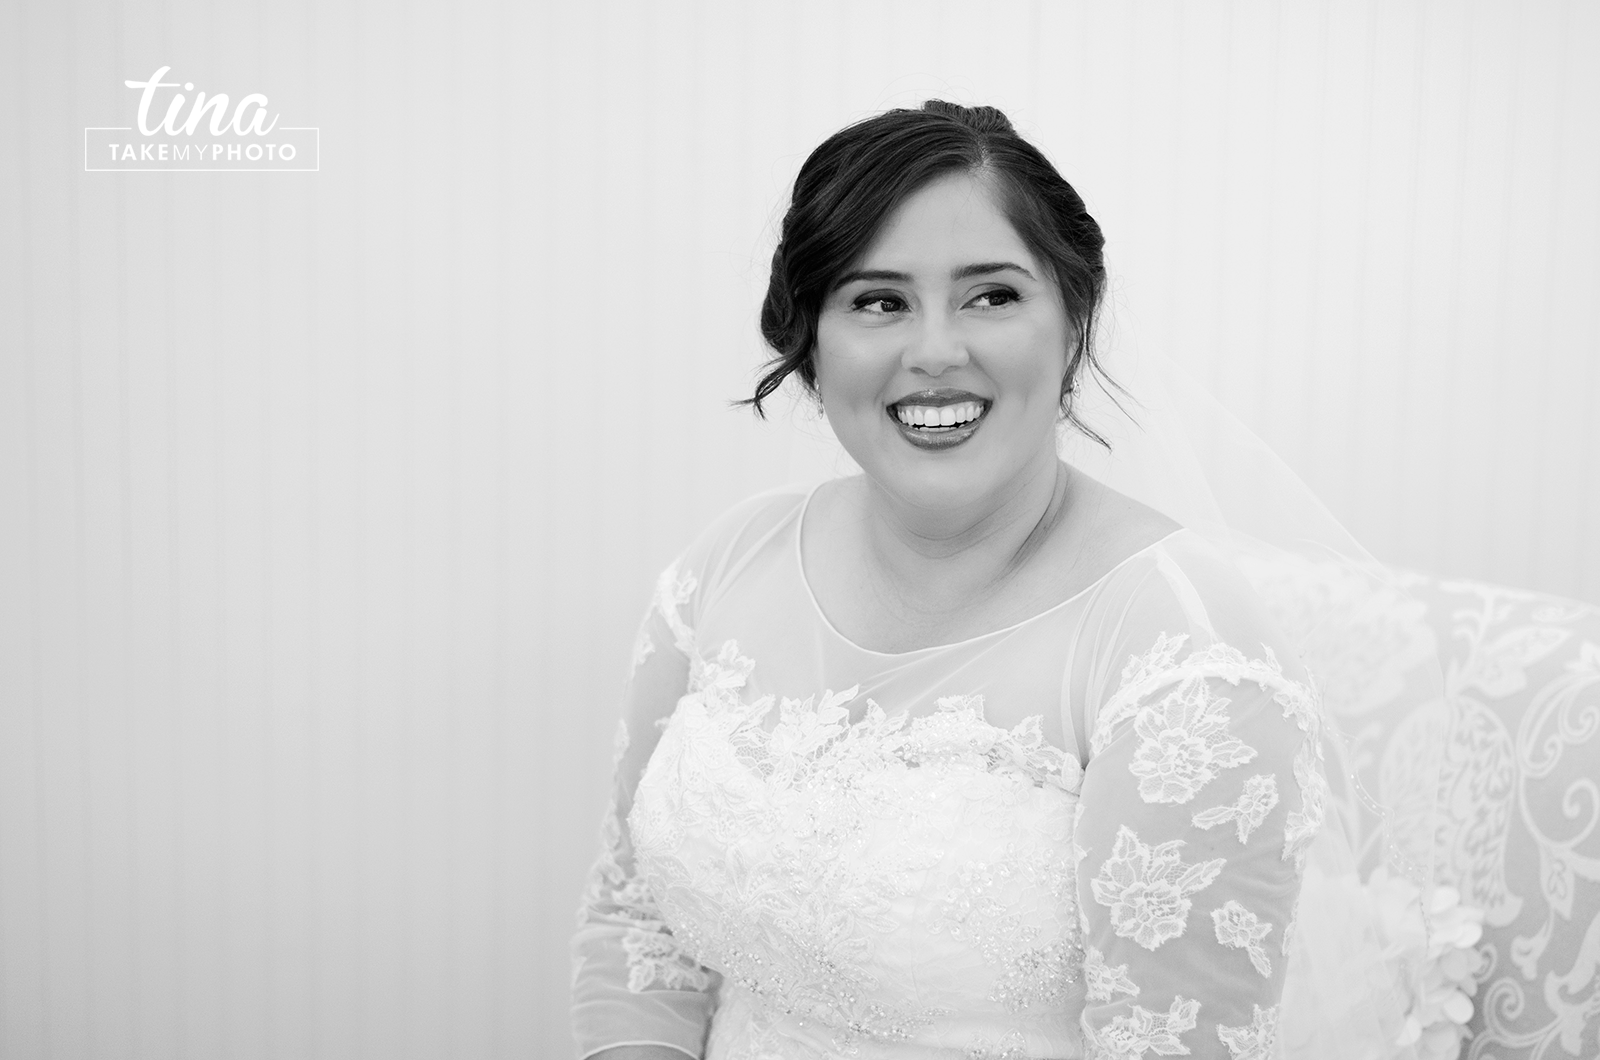 bridal-portrait-black-white-sitting-natural-light-smile-laugh-wedding-photographer-brandermill-country-club-virginia